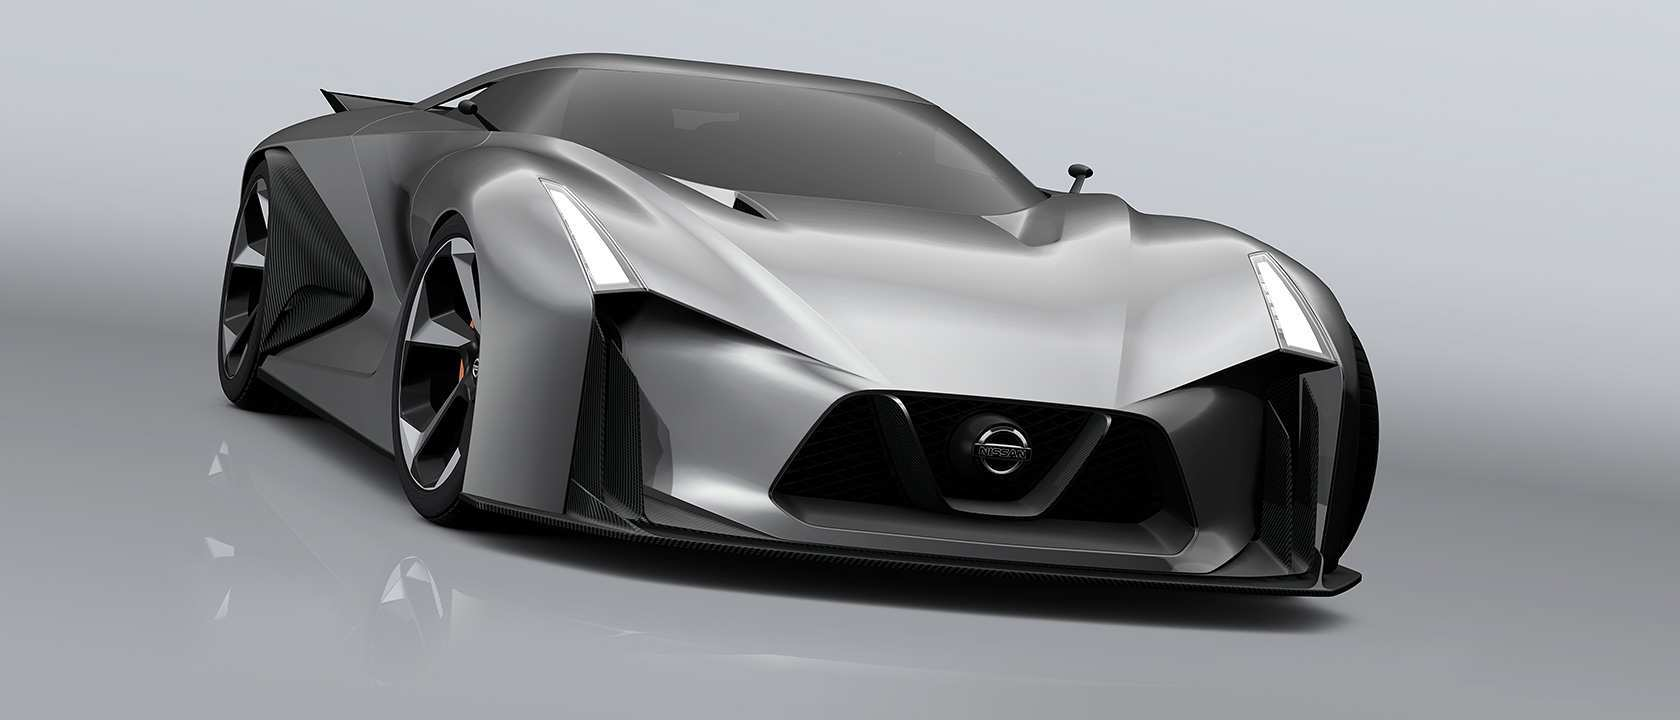 62 A 2020 Nissan Vision Gran Turismo Redesign And Concept